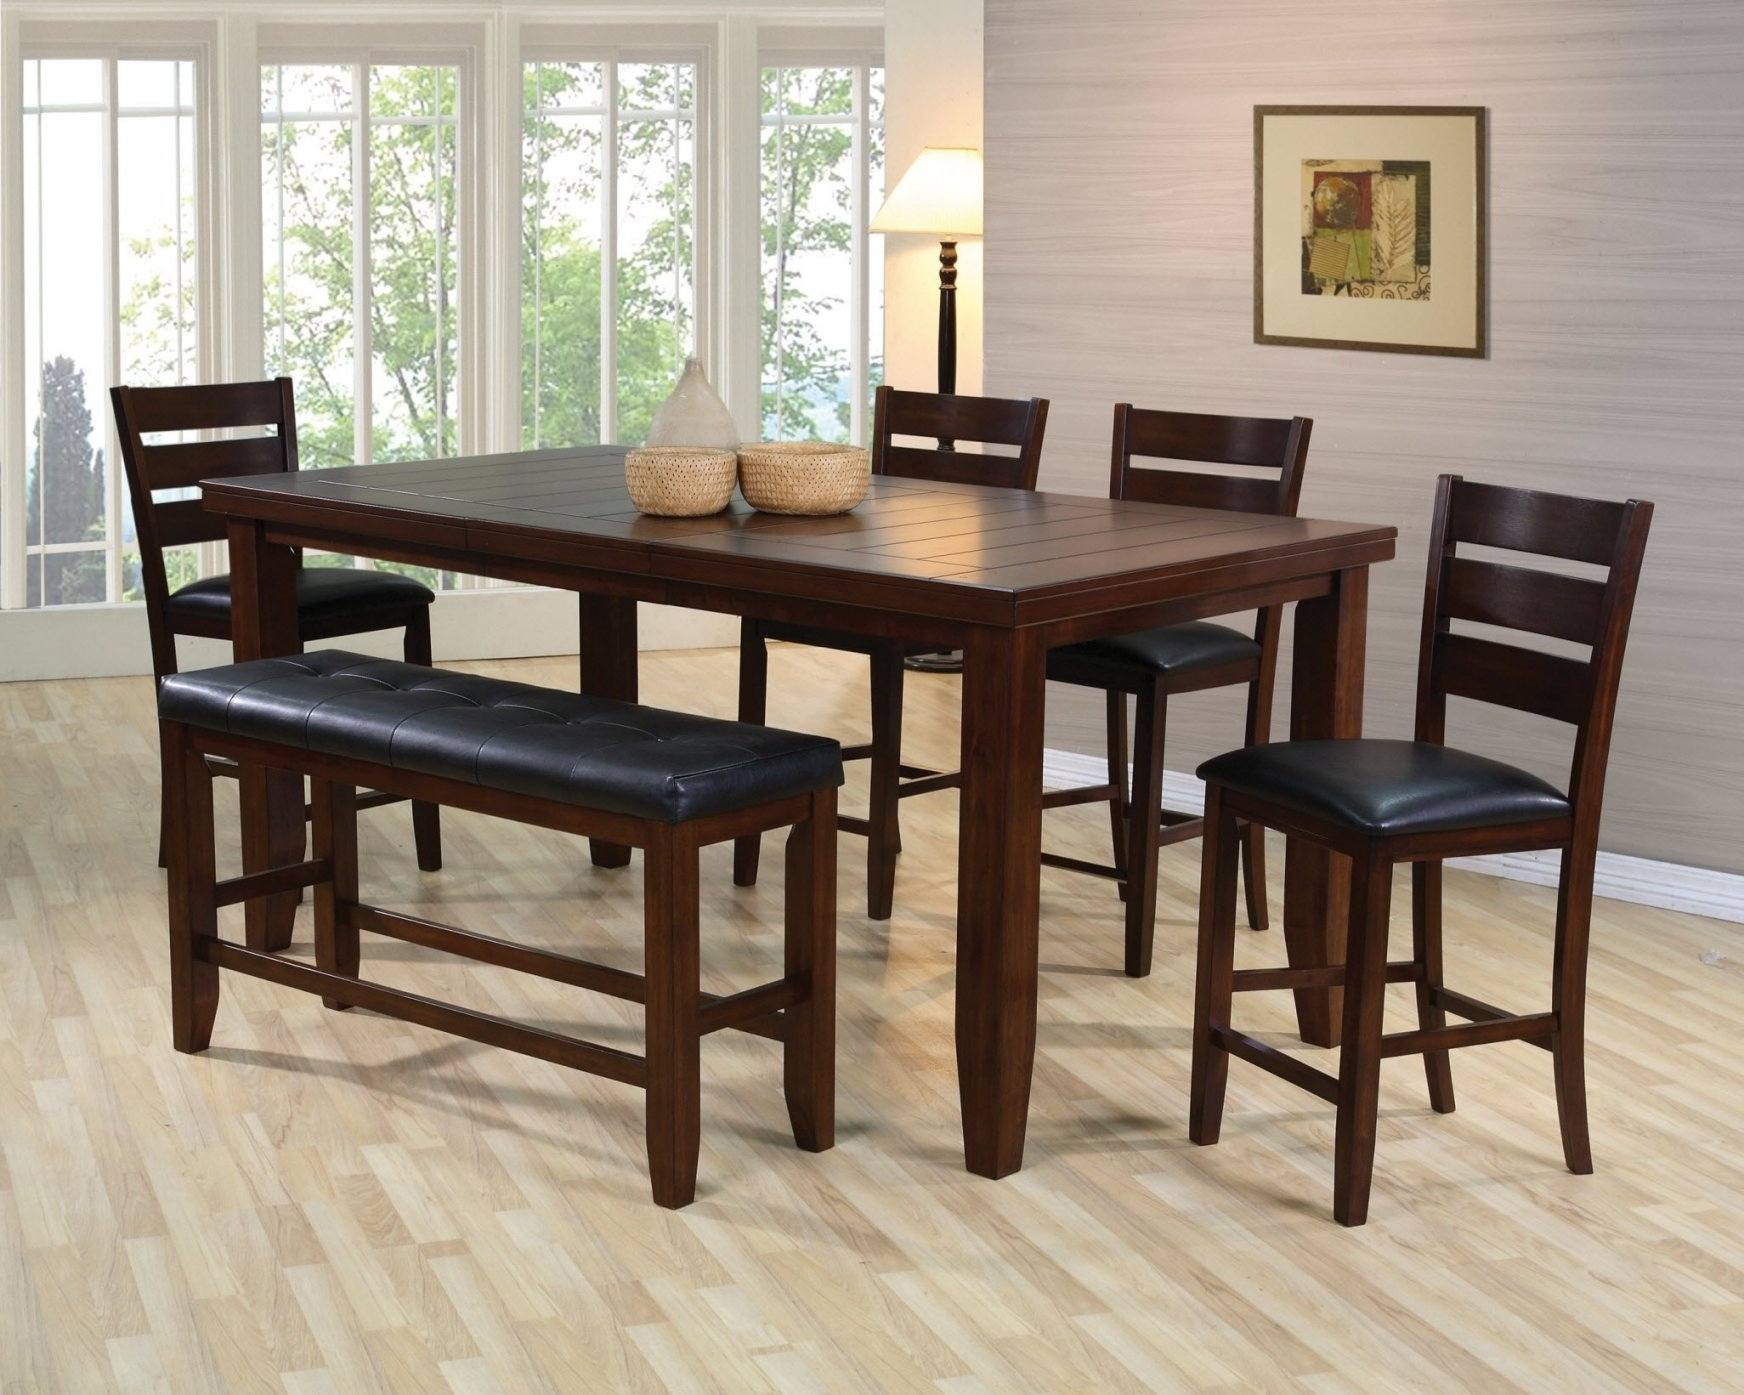 Cheap Dining Sets Within Famous Elegant Shining Cheap Dining Table And Chairs All Room On Sets Under (View 6 of 25)